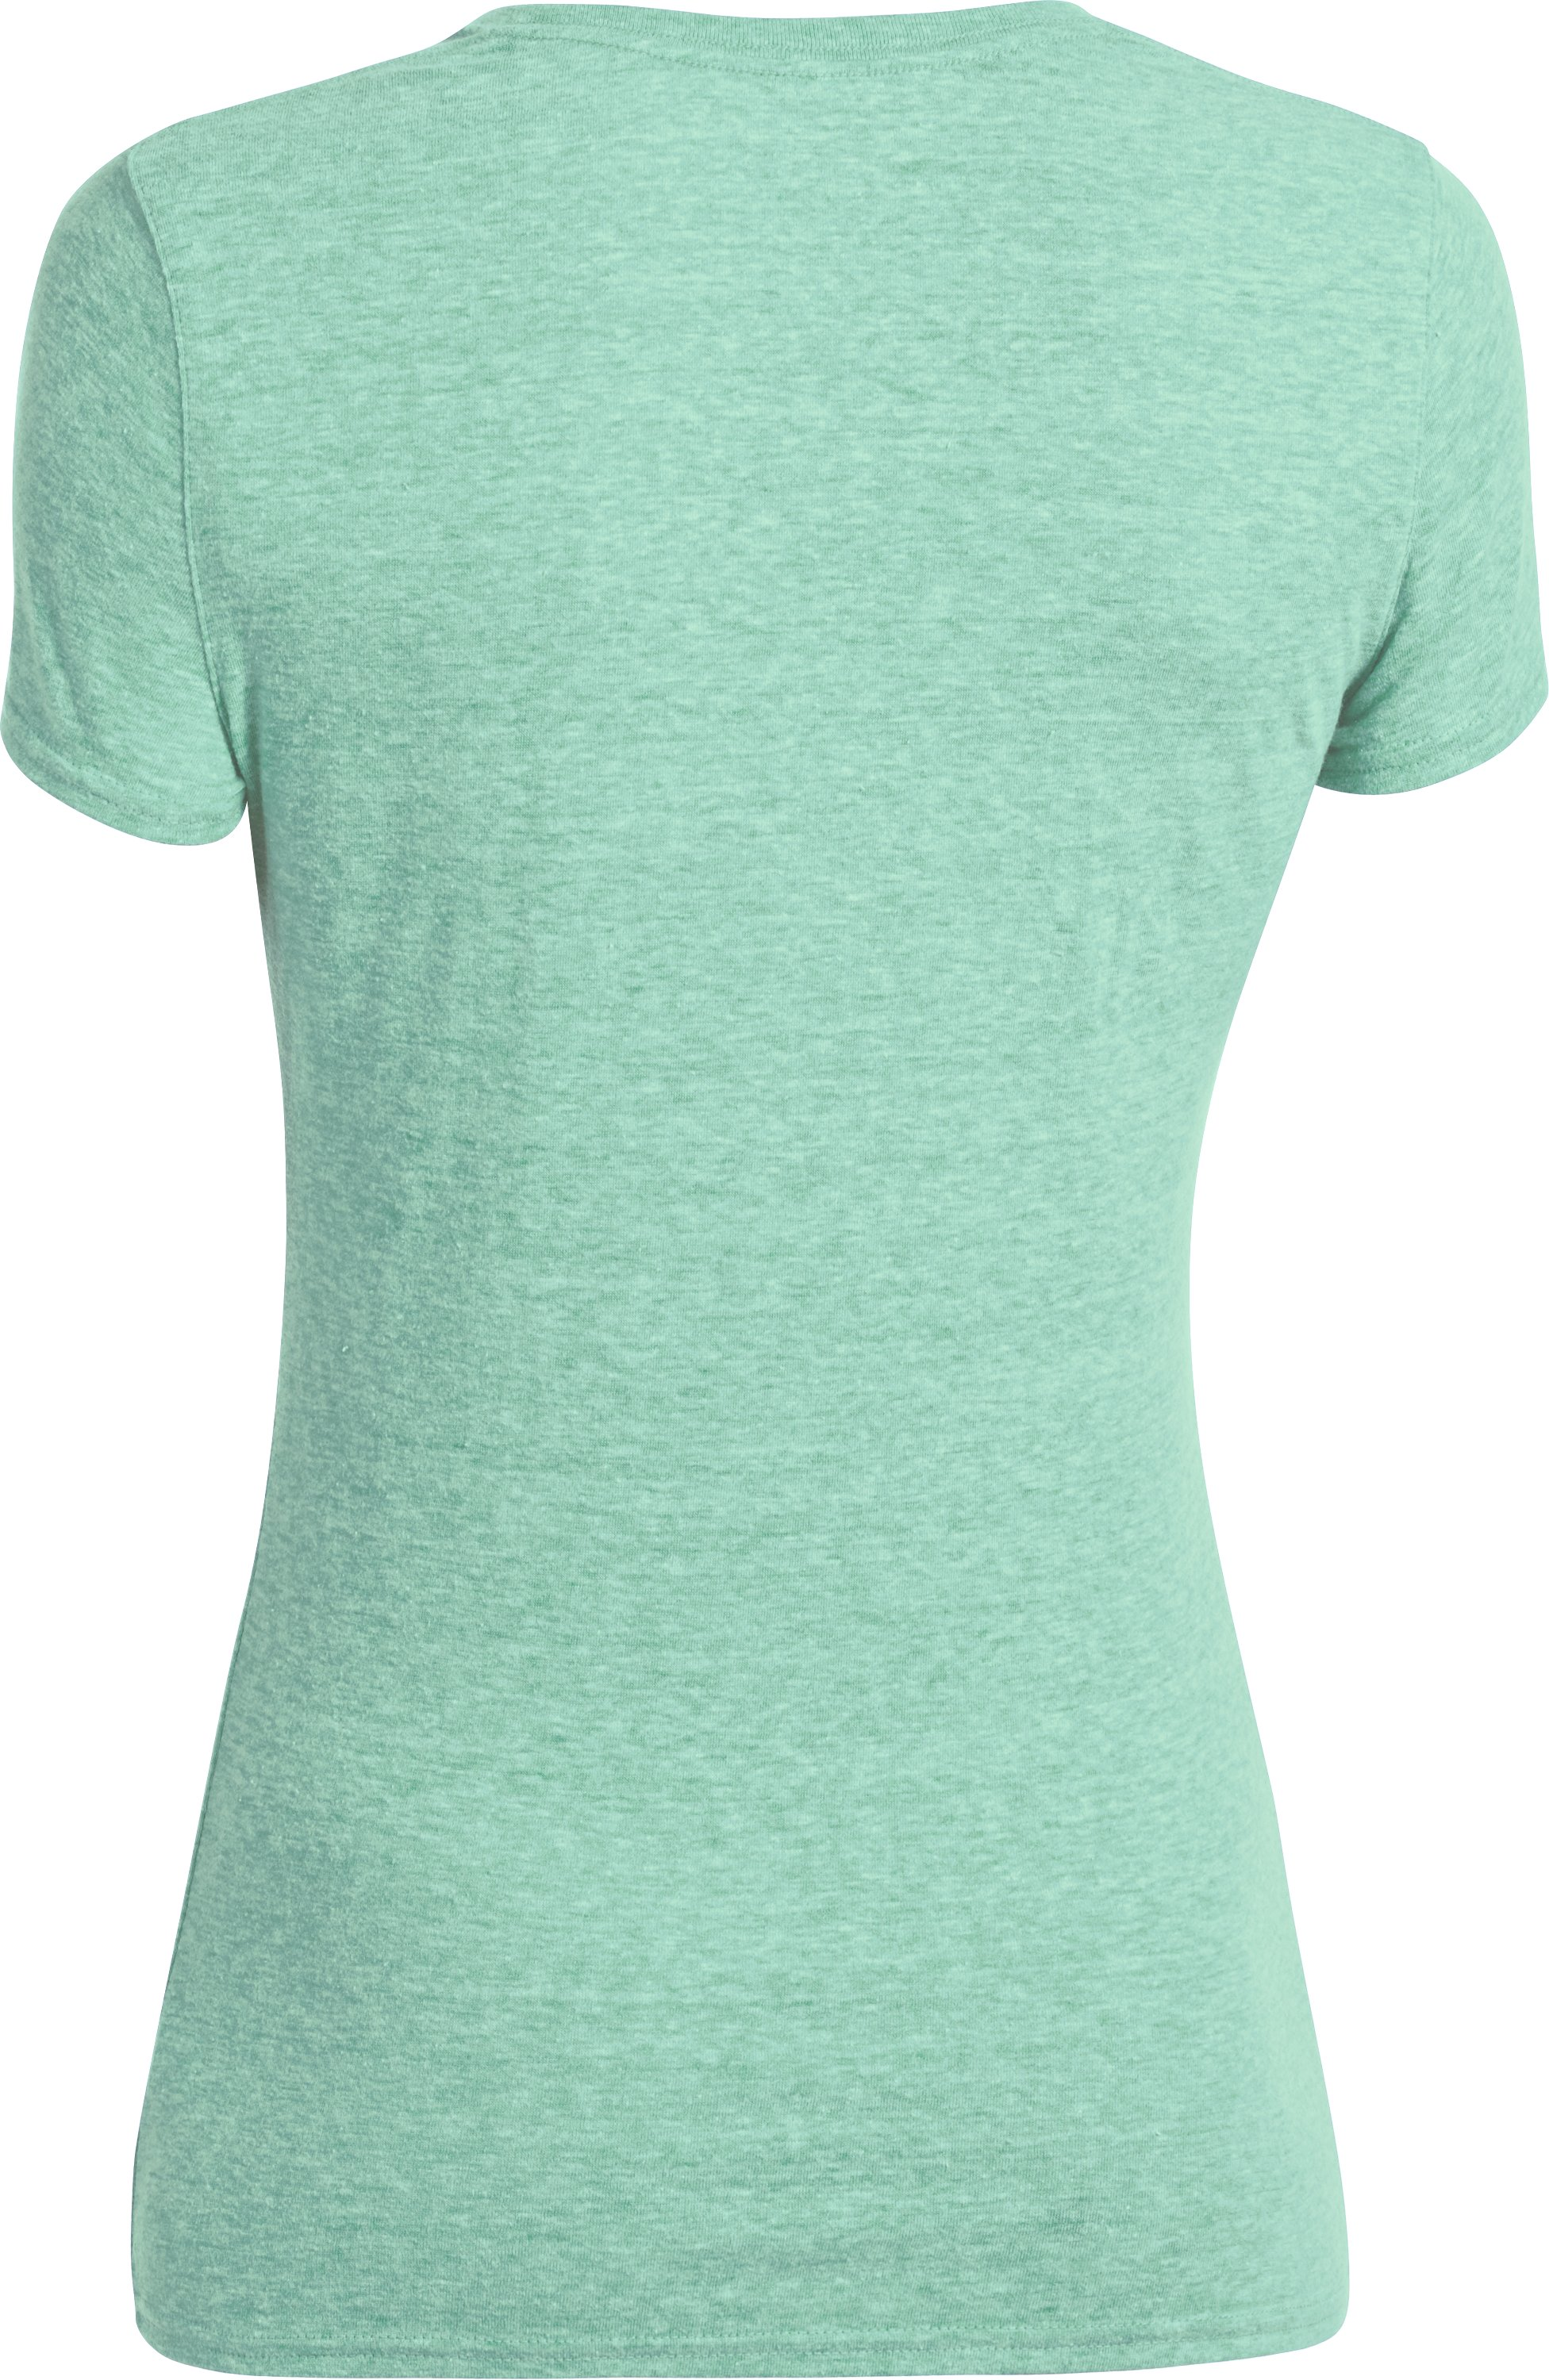 Women's Charged Cotton® Undeniable T-Shirt, EMERALD LAKE